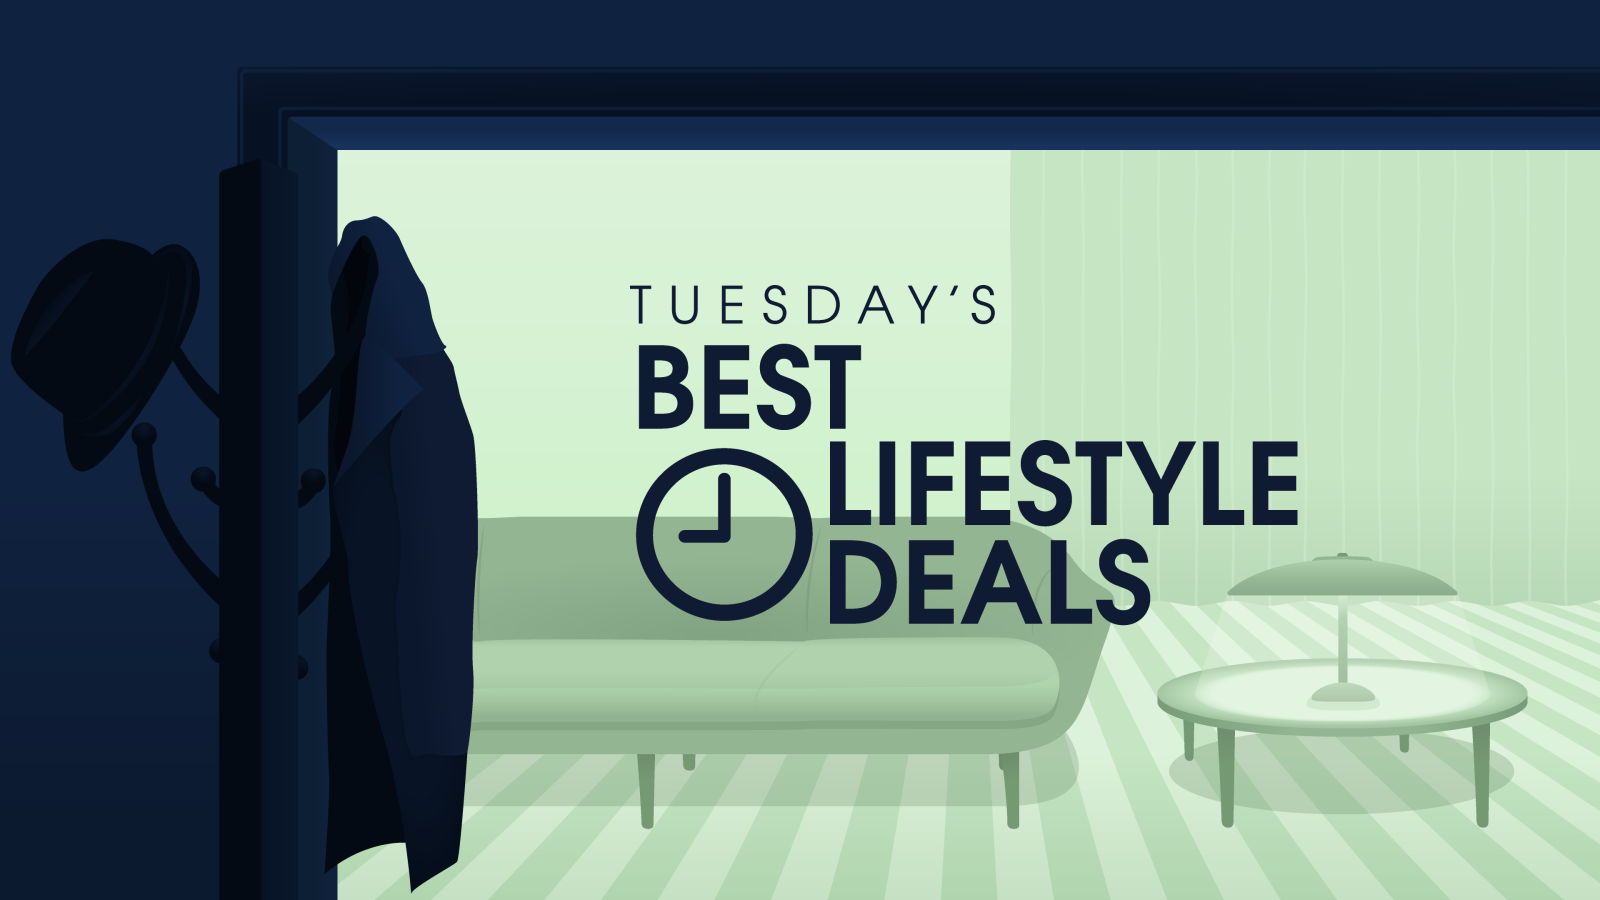 Tuesday's Best Lifestyle Deals: The North Face, Converse, Wayfair's Memorial Day Sale, more